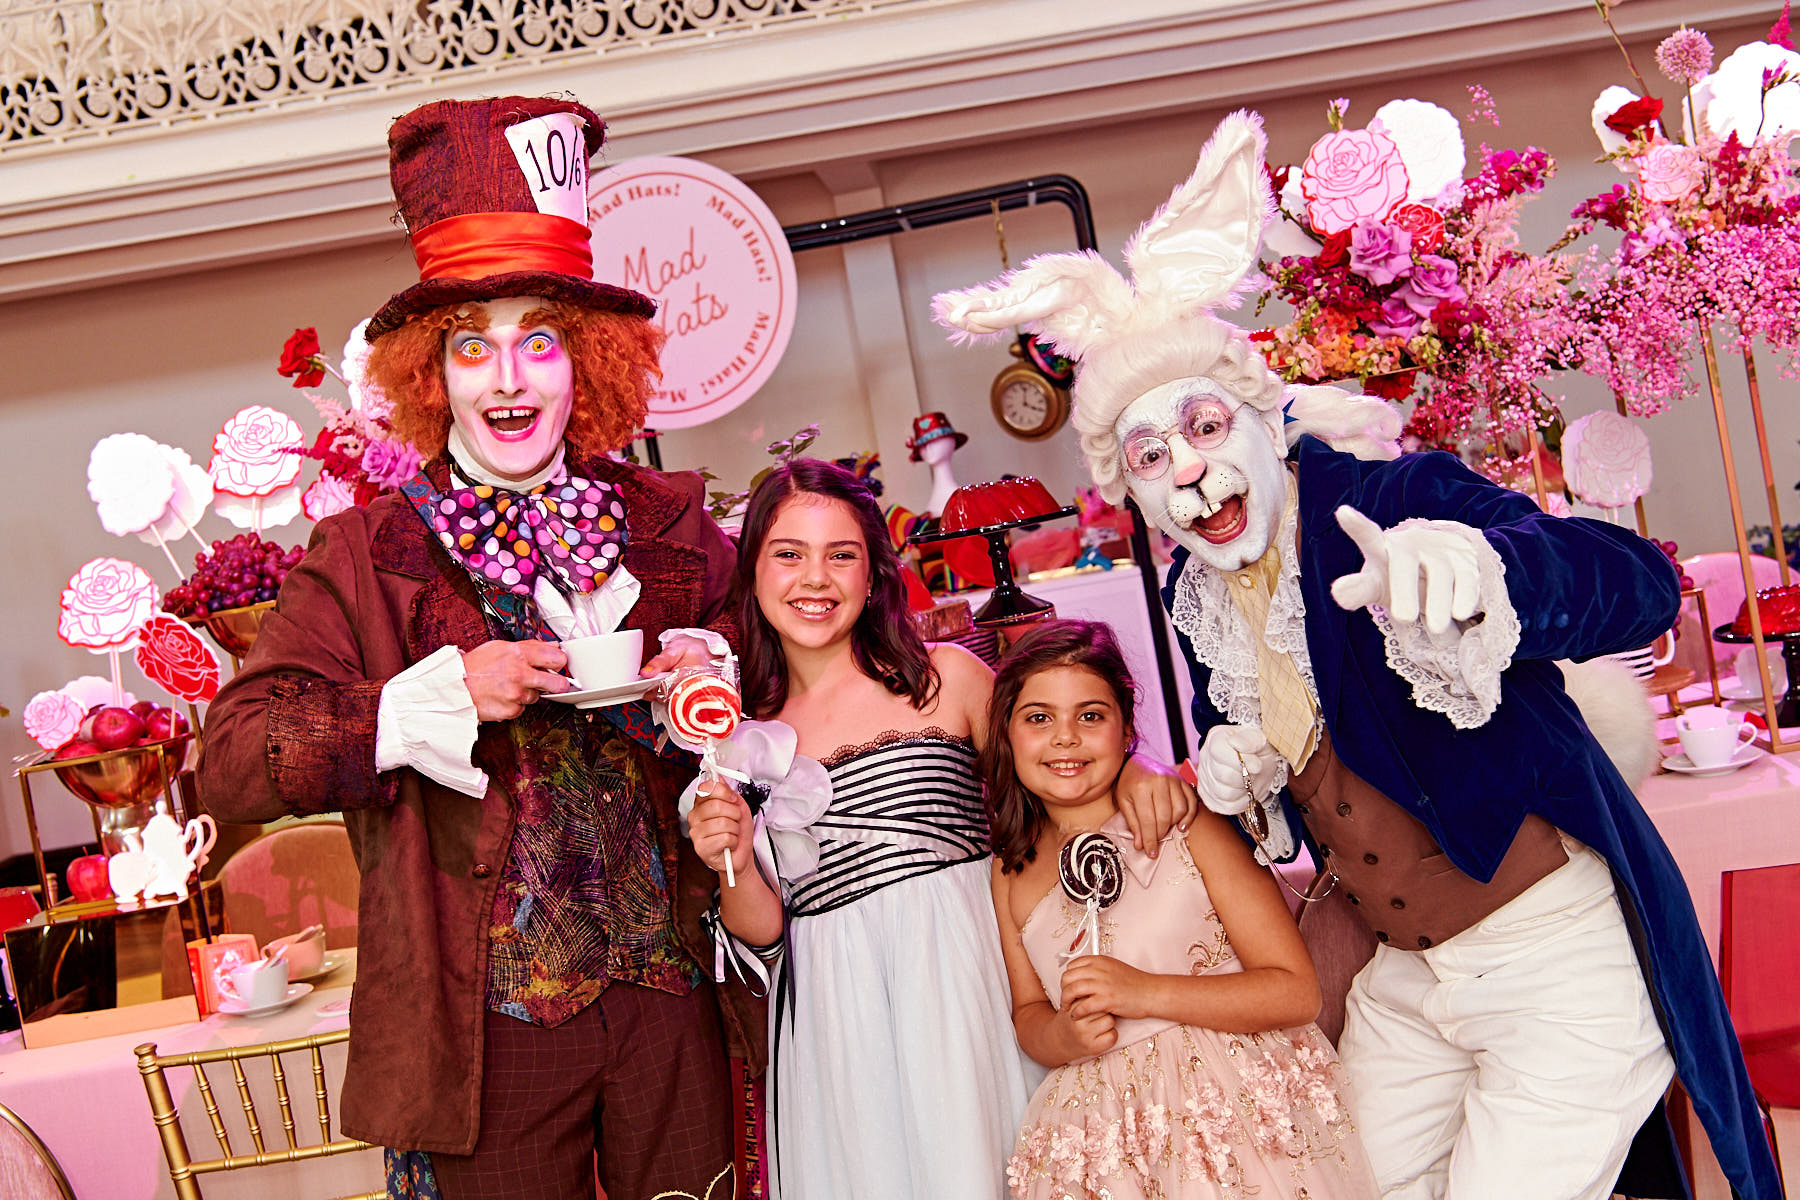 event planning Alice in Wonderland themed events. The secret to an immersive and memorable event.